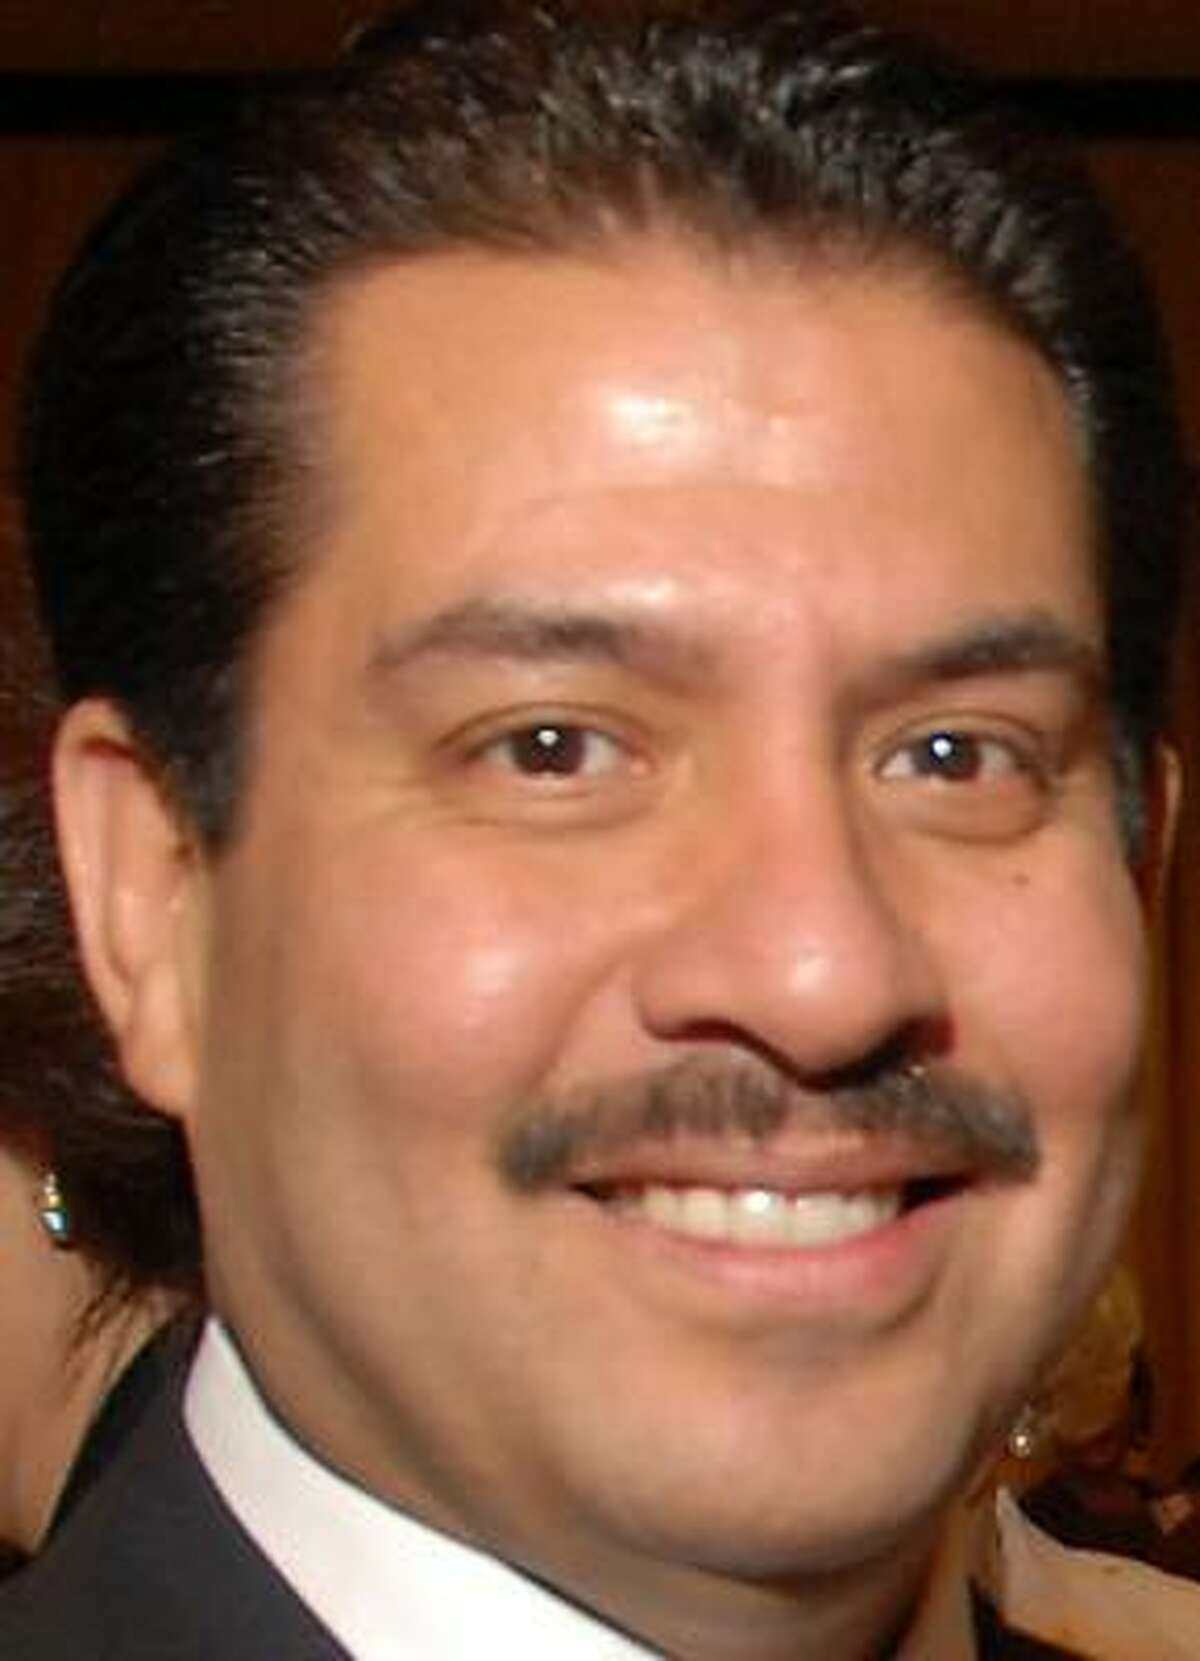 Houston City Councilman Adrian Garcia is expected to get the deputy union's endorsement for sheriff.